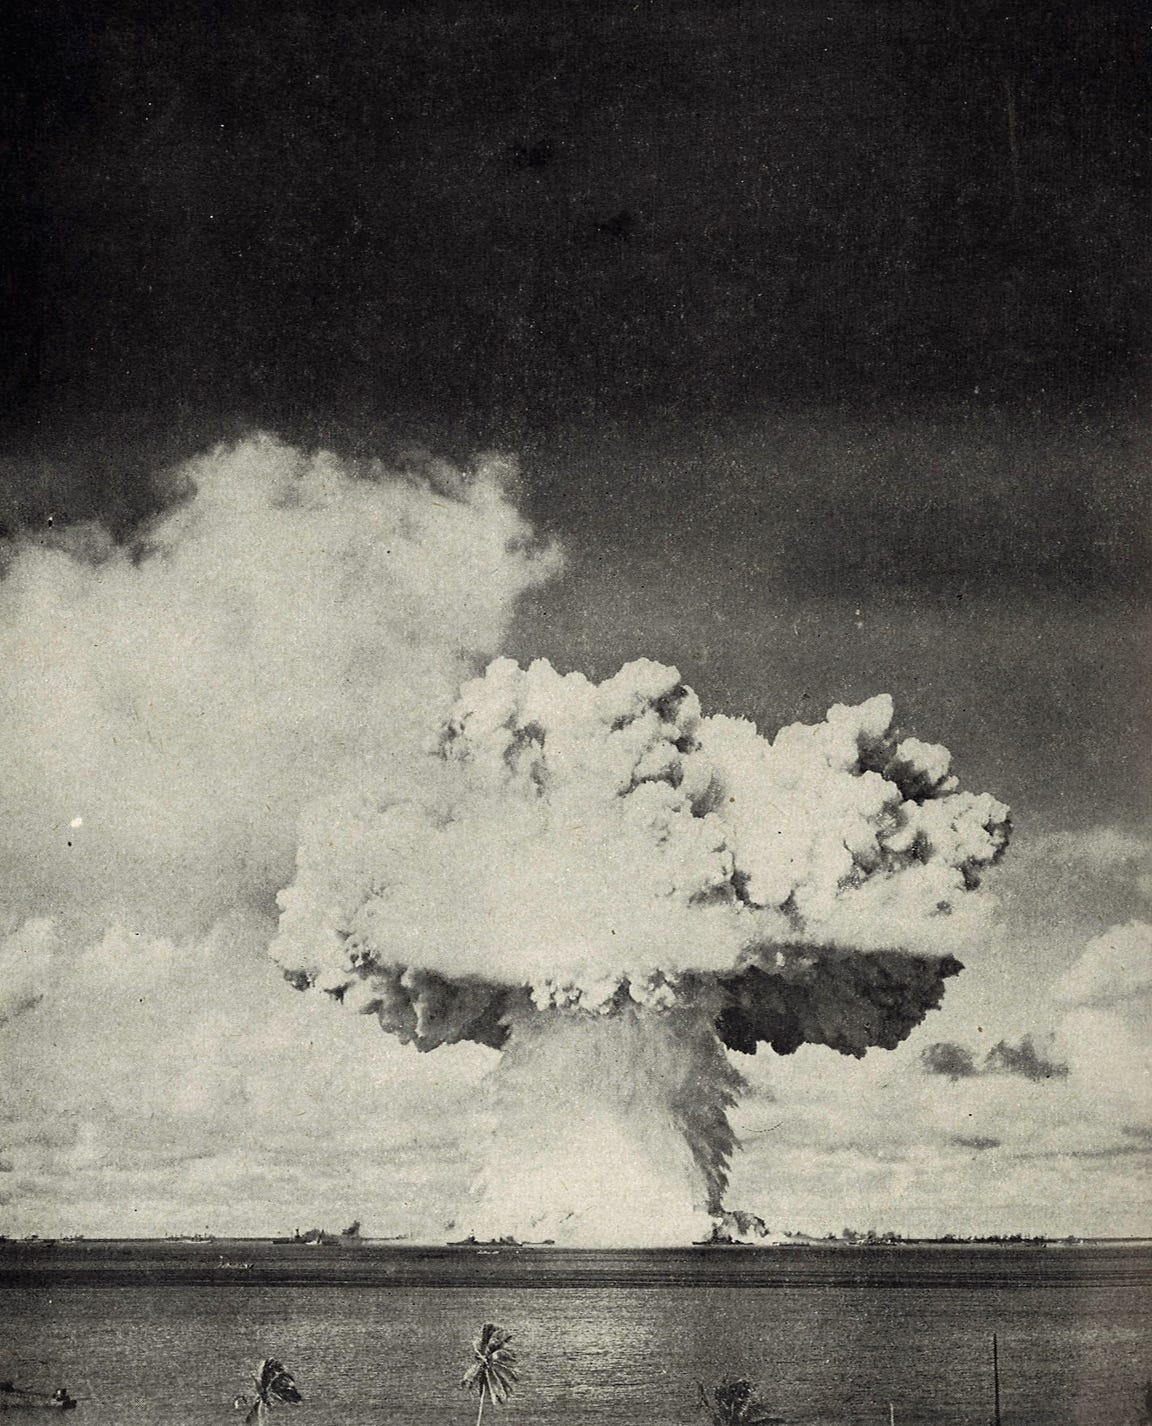 The descent of the water column back into the Bikini Atoll lagoon, estimated to be in the millions of tons, descends after the Baker detonation.